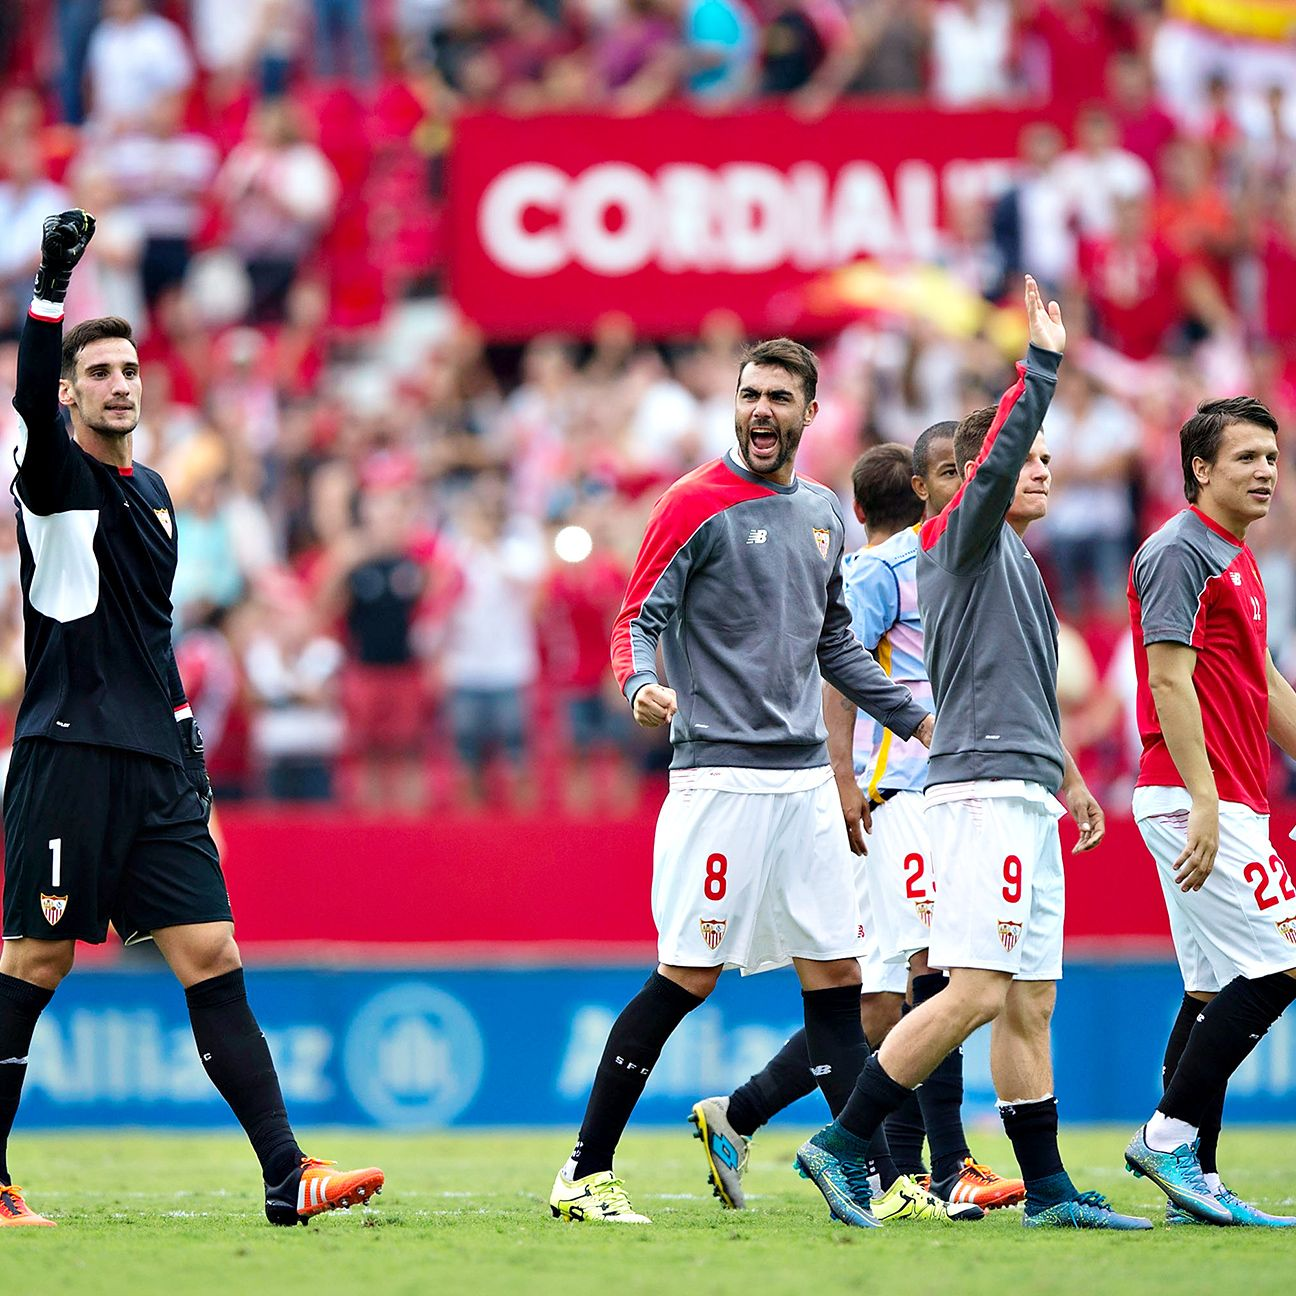 Sergio Rico and Sevilla collected just their second league victory of the season against Barcelona on Saturday.